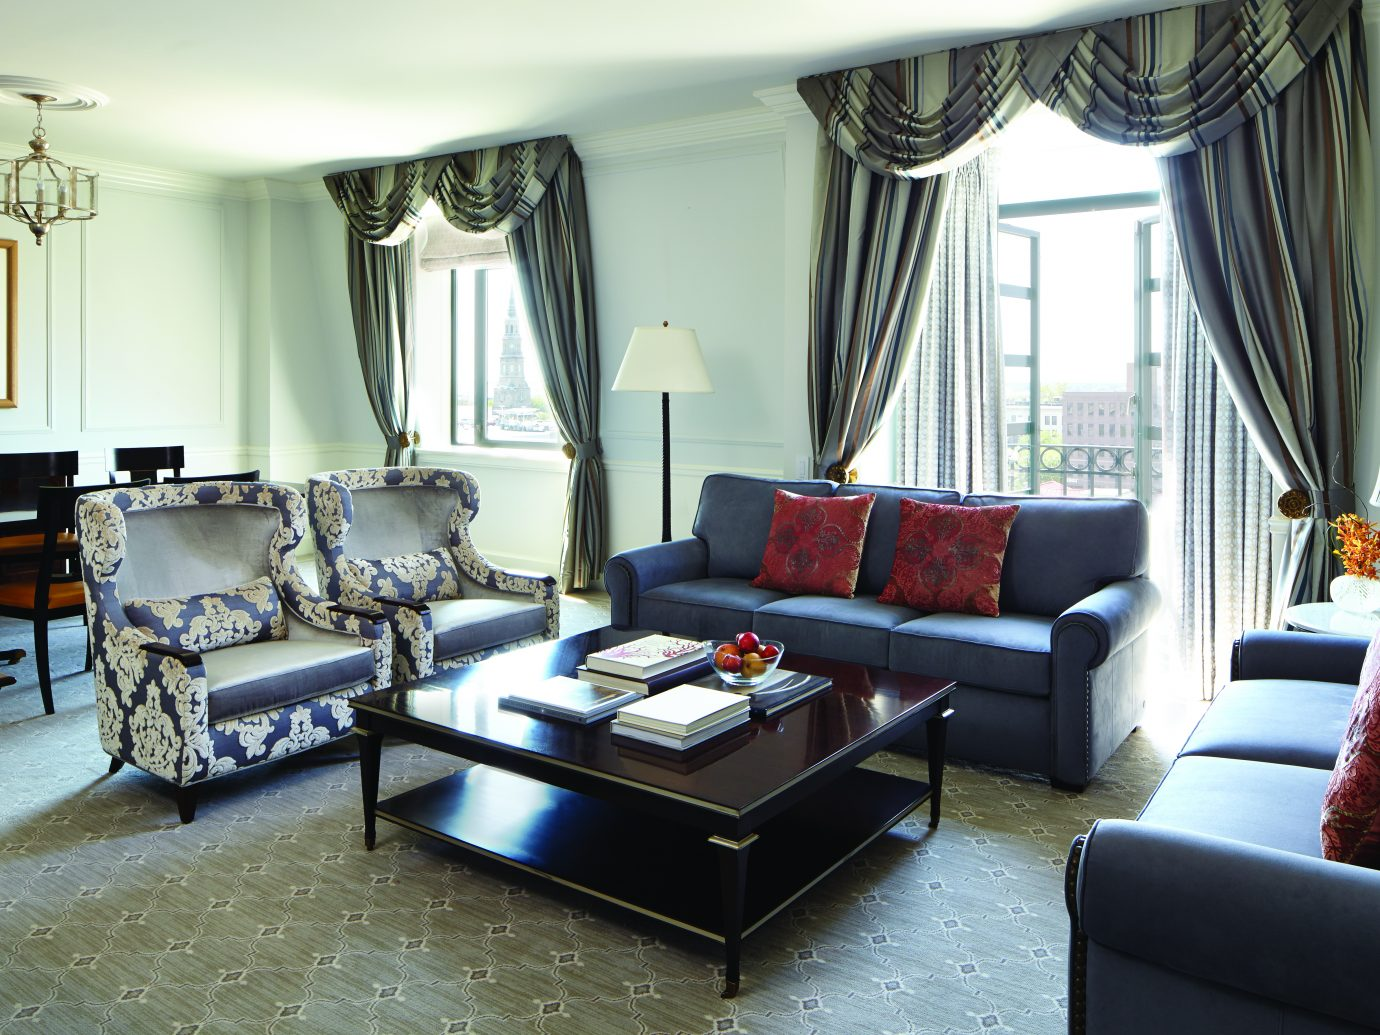 Luxury Suite at the Belmond Charleston Place